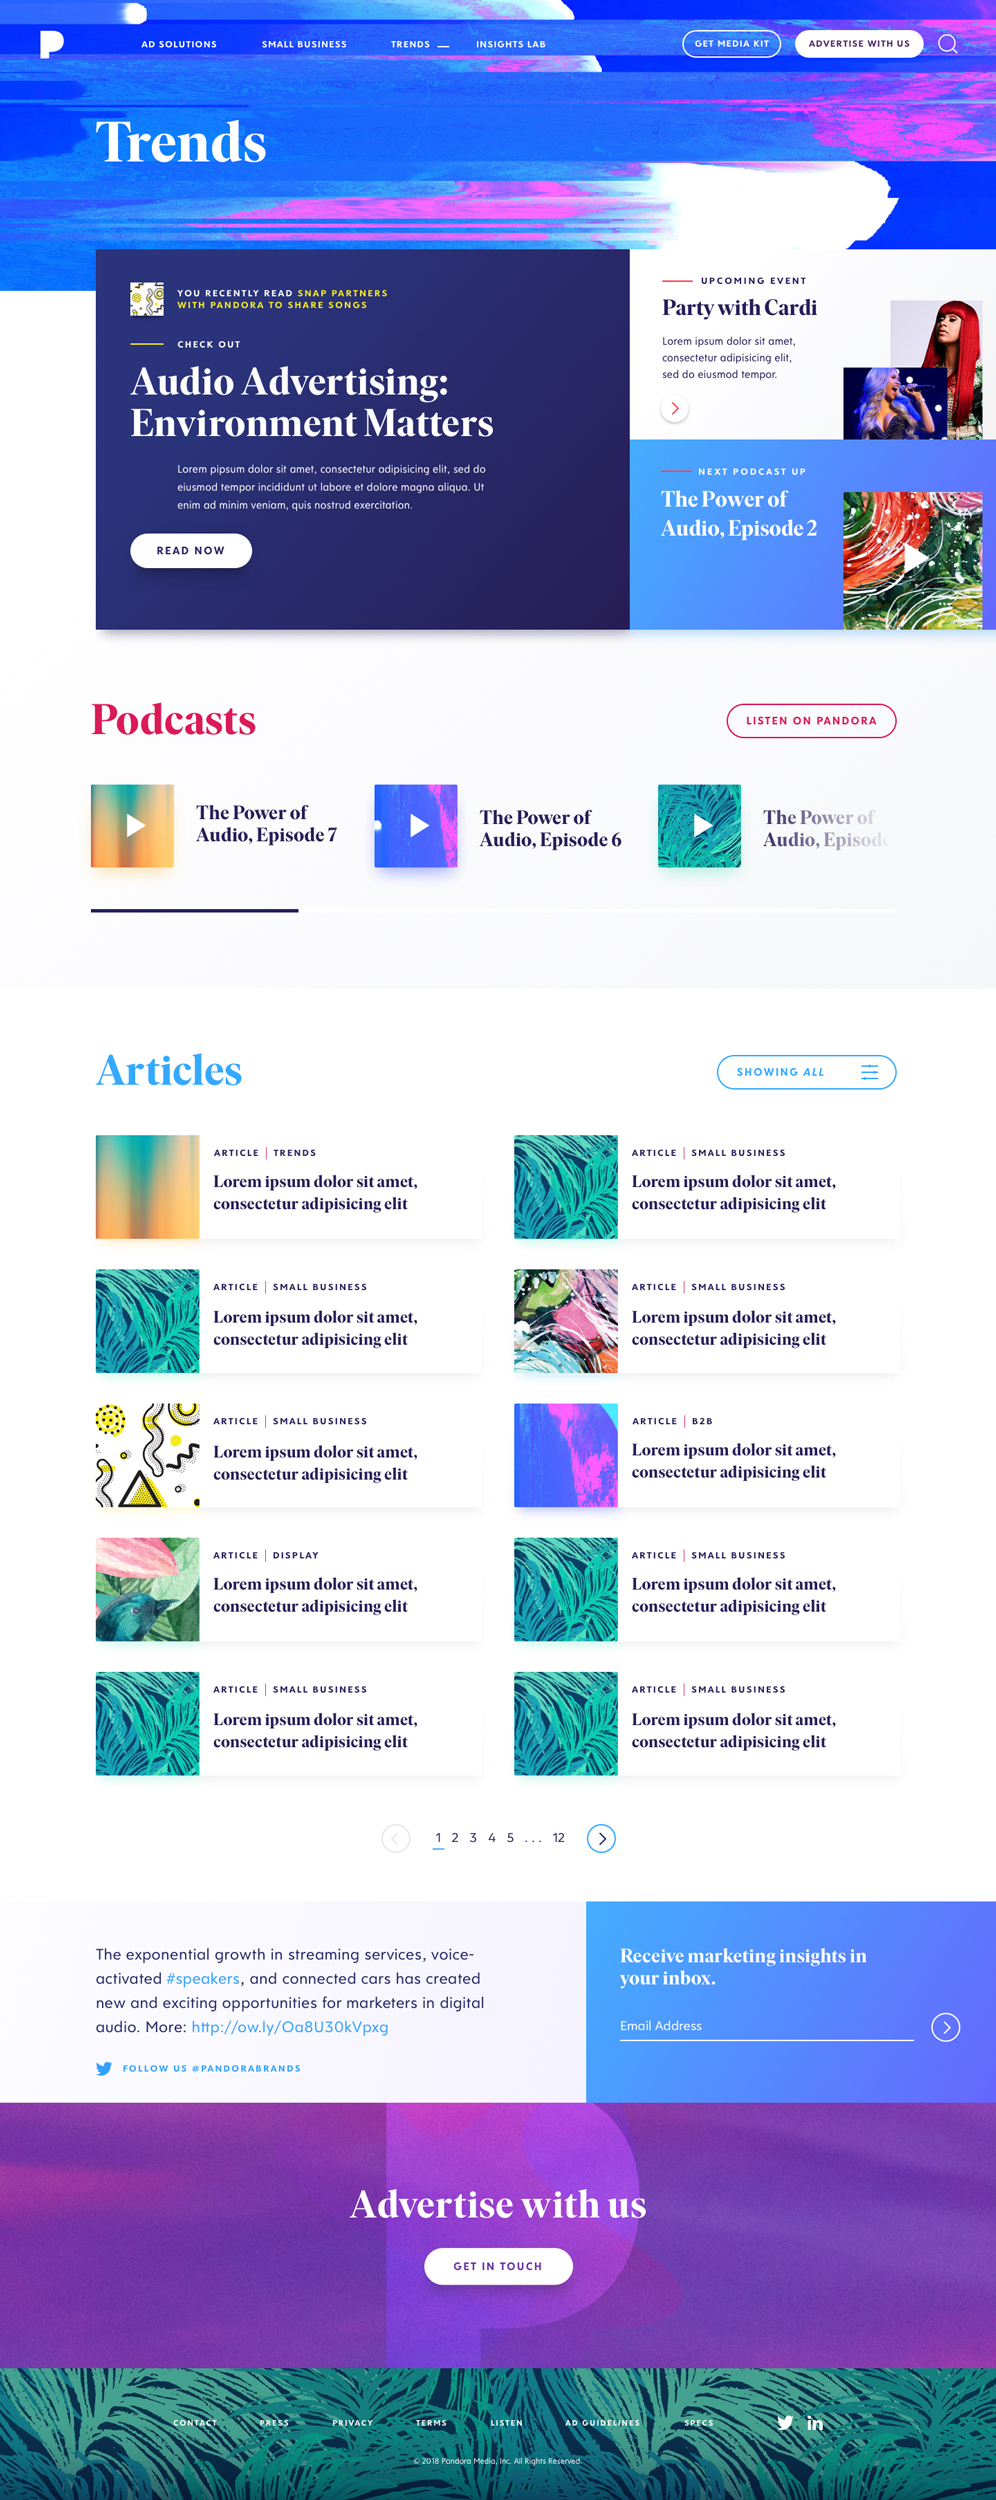 Pandora for Brands redesign. Trends page showing an alternative colour scheme showcasing media types